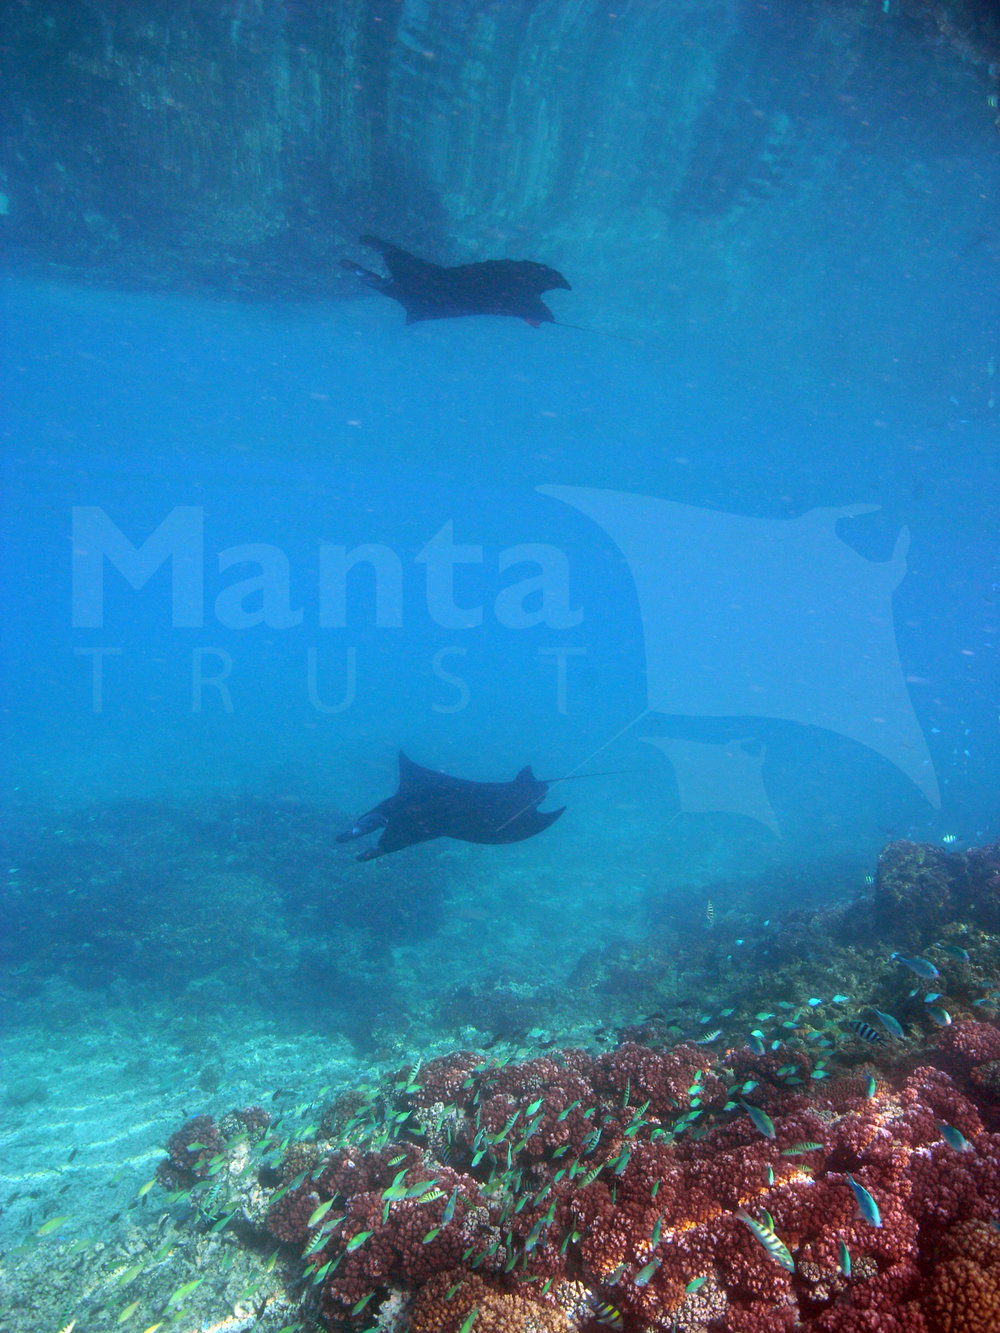 Reflection, Manta Channel, Yasawas, Fiji. Steve Pollett.jpg